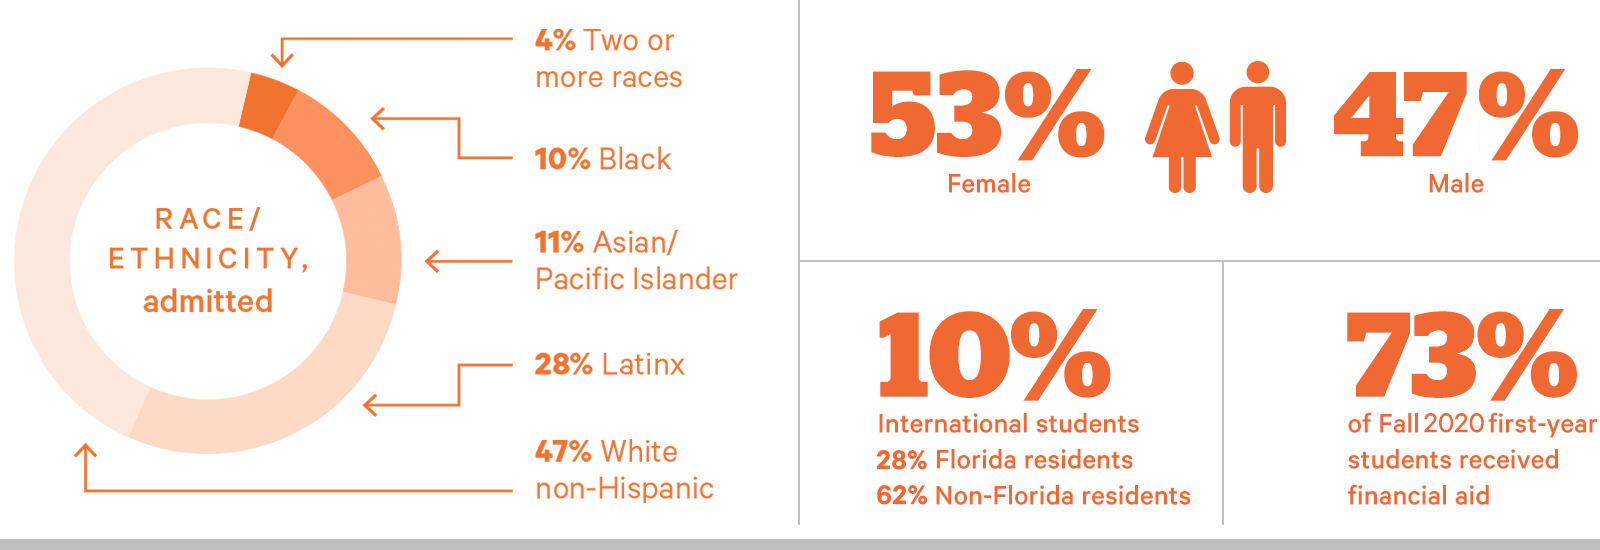 Male 48% Female 52% Florida Residents 29% Non-Florida Residents 40% International 11% Ethnicity Asian/Pacific Islander 14% Black/African American 11% Hispanic/Latino 19% Not Specified 5% Two or More Races 4% White 47%